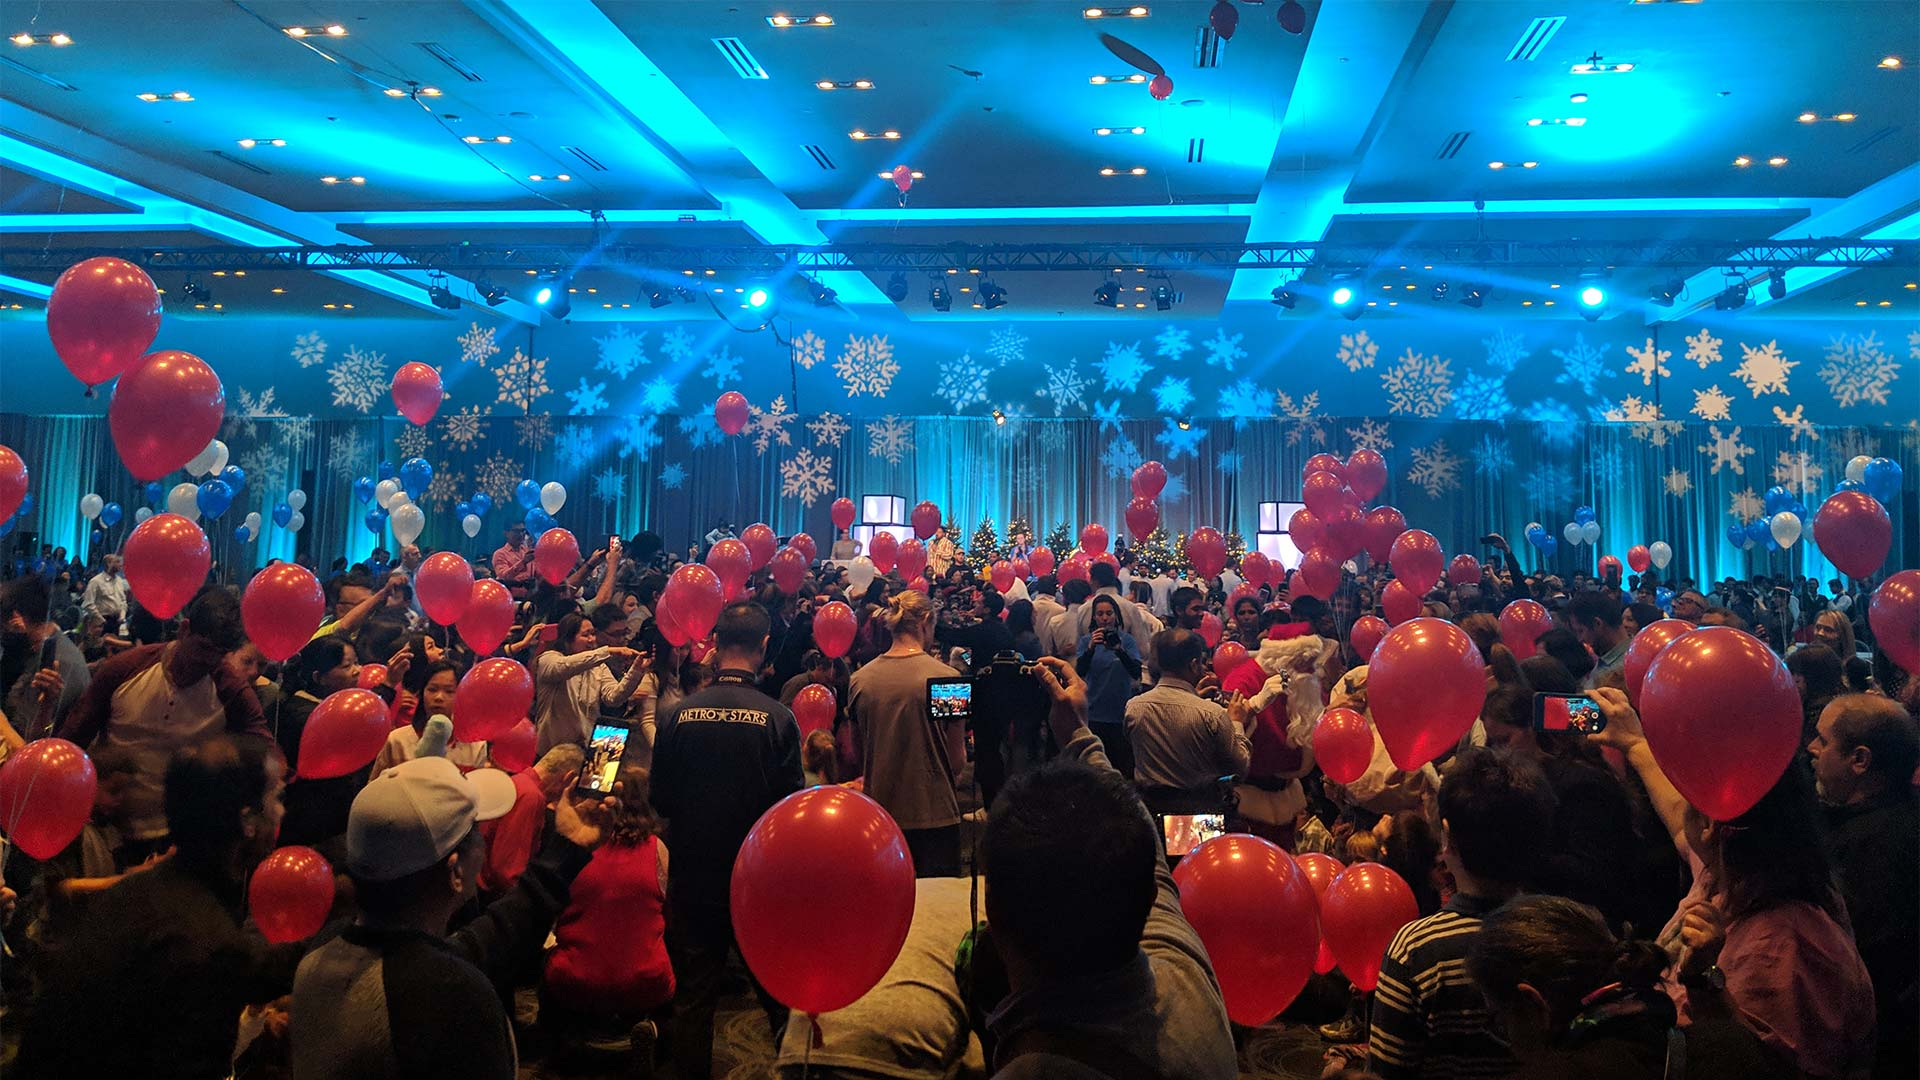 A grand holiday party in a large event space with blue lights, red balloons, and snow flake projections.